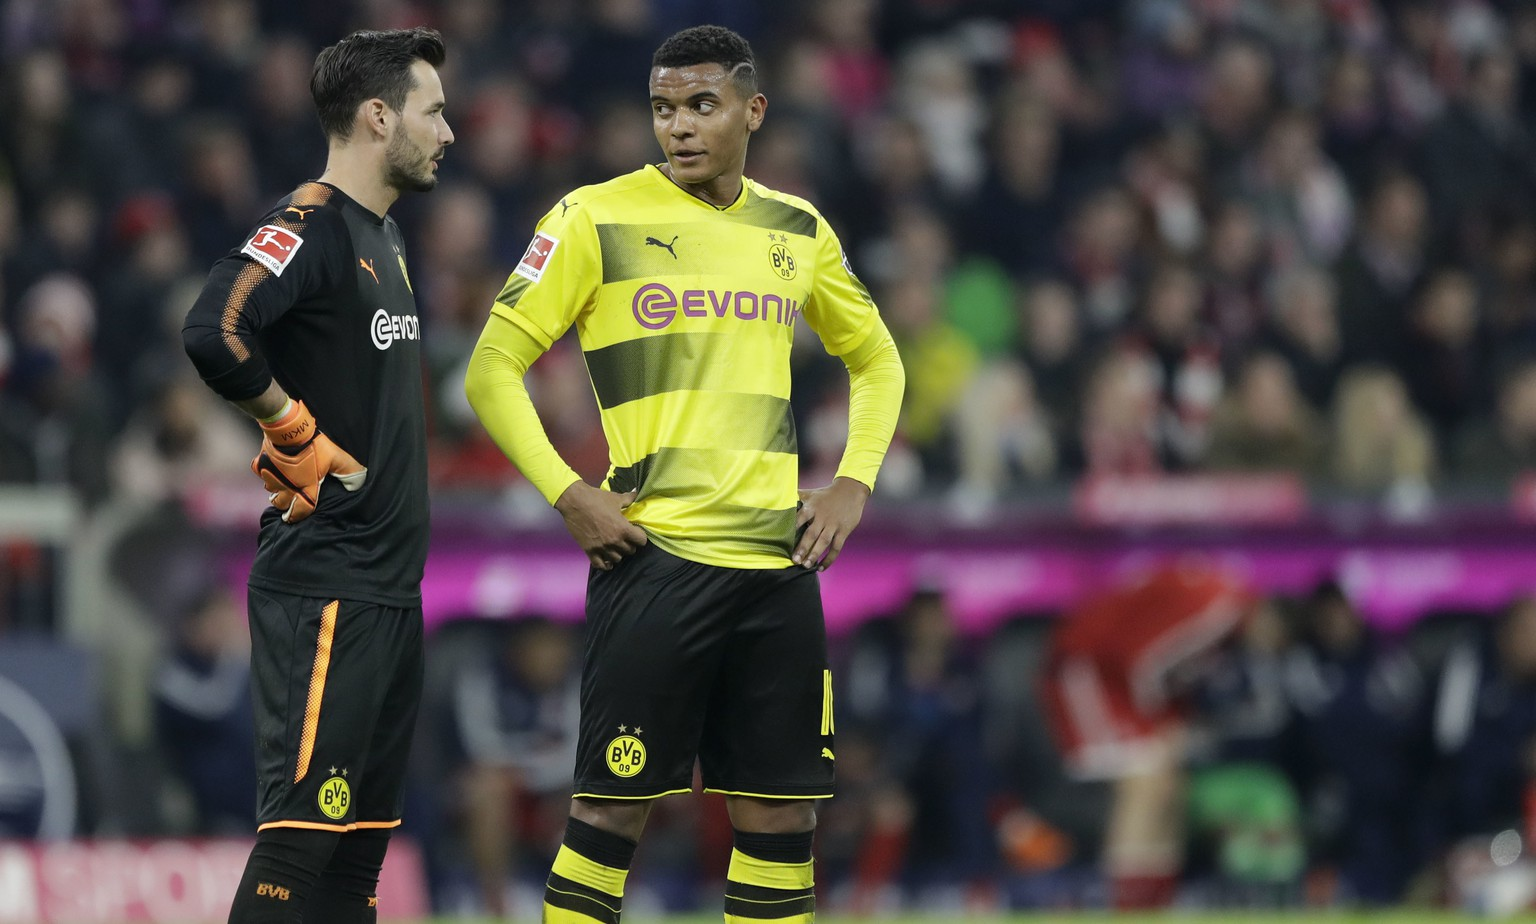 Dortmund goalkeeper Roman Buerki, left, talks to team mate Manuel Akanji during the German Bundesliga soccer match between FC Bayern Munich and Borussia Dortmund in Munich, Germany, Saturday, March 31, 2018. (AP Photo/Matthias Schrader)